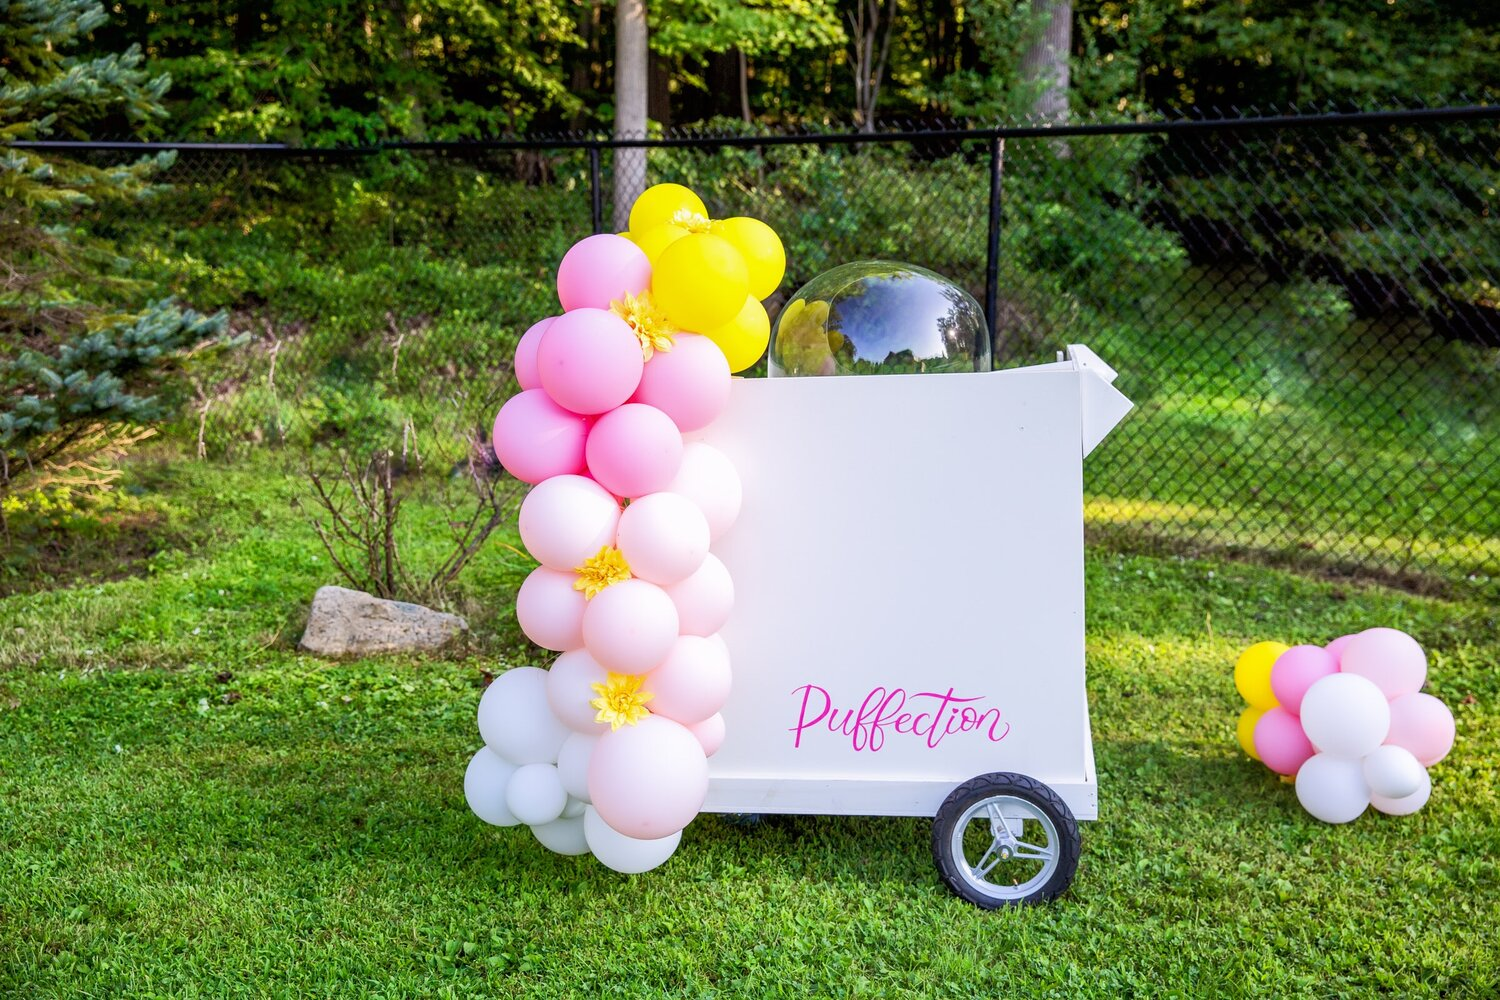 THE perfect addition to any kid's event are concession stand food carts. Tasha of All About Play brought her Puffection cart to give the kids a taste of her organic lemon cotton candy.